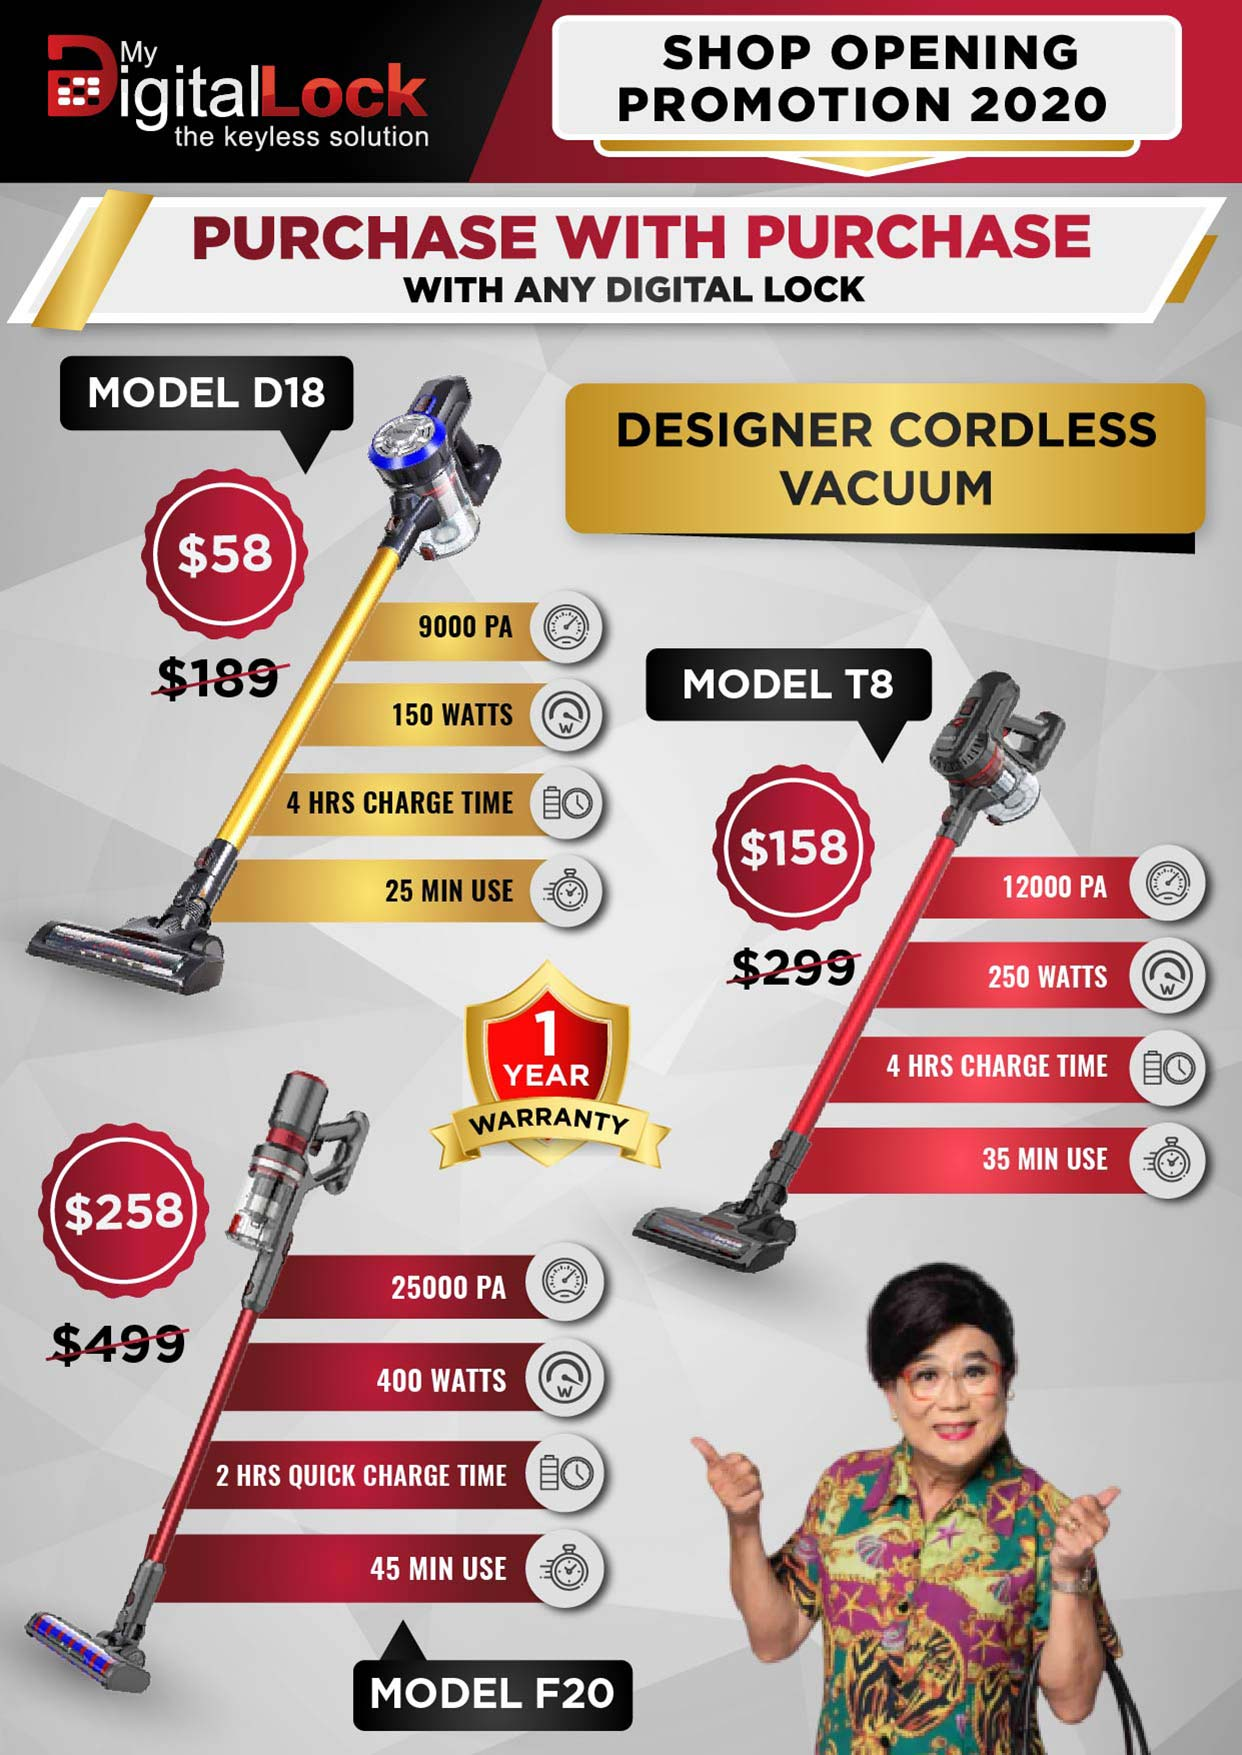 Flyer Design for Designer Cordless Vacuum Cleaner